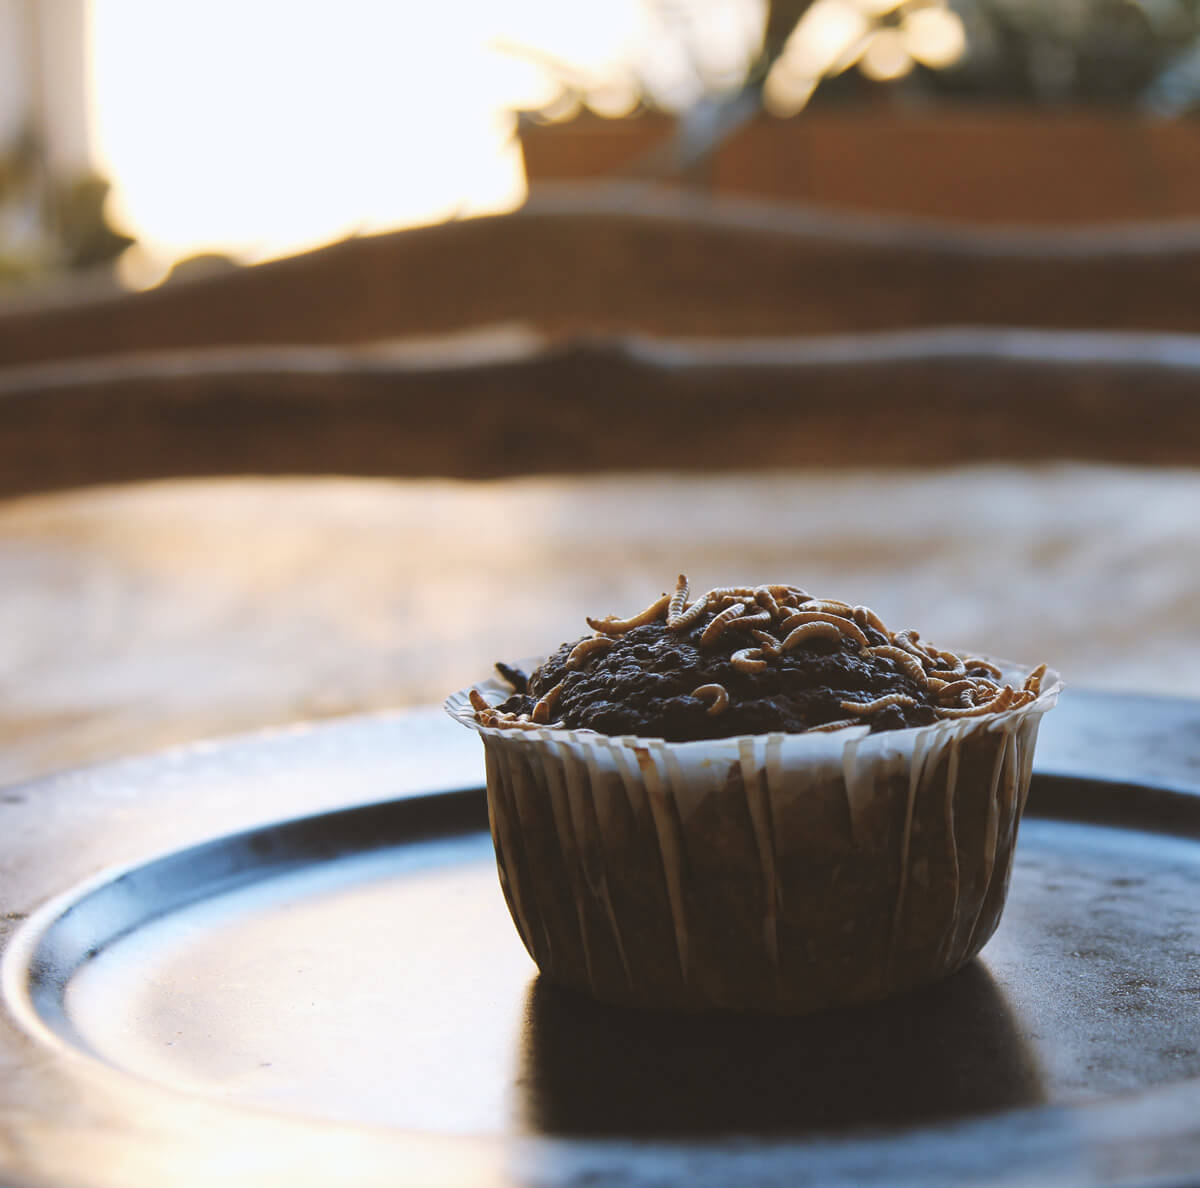 Cupcake with insects